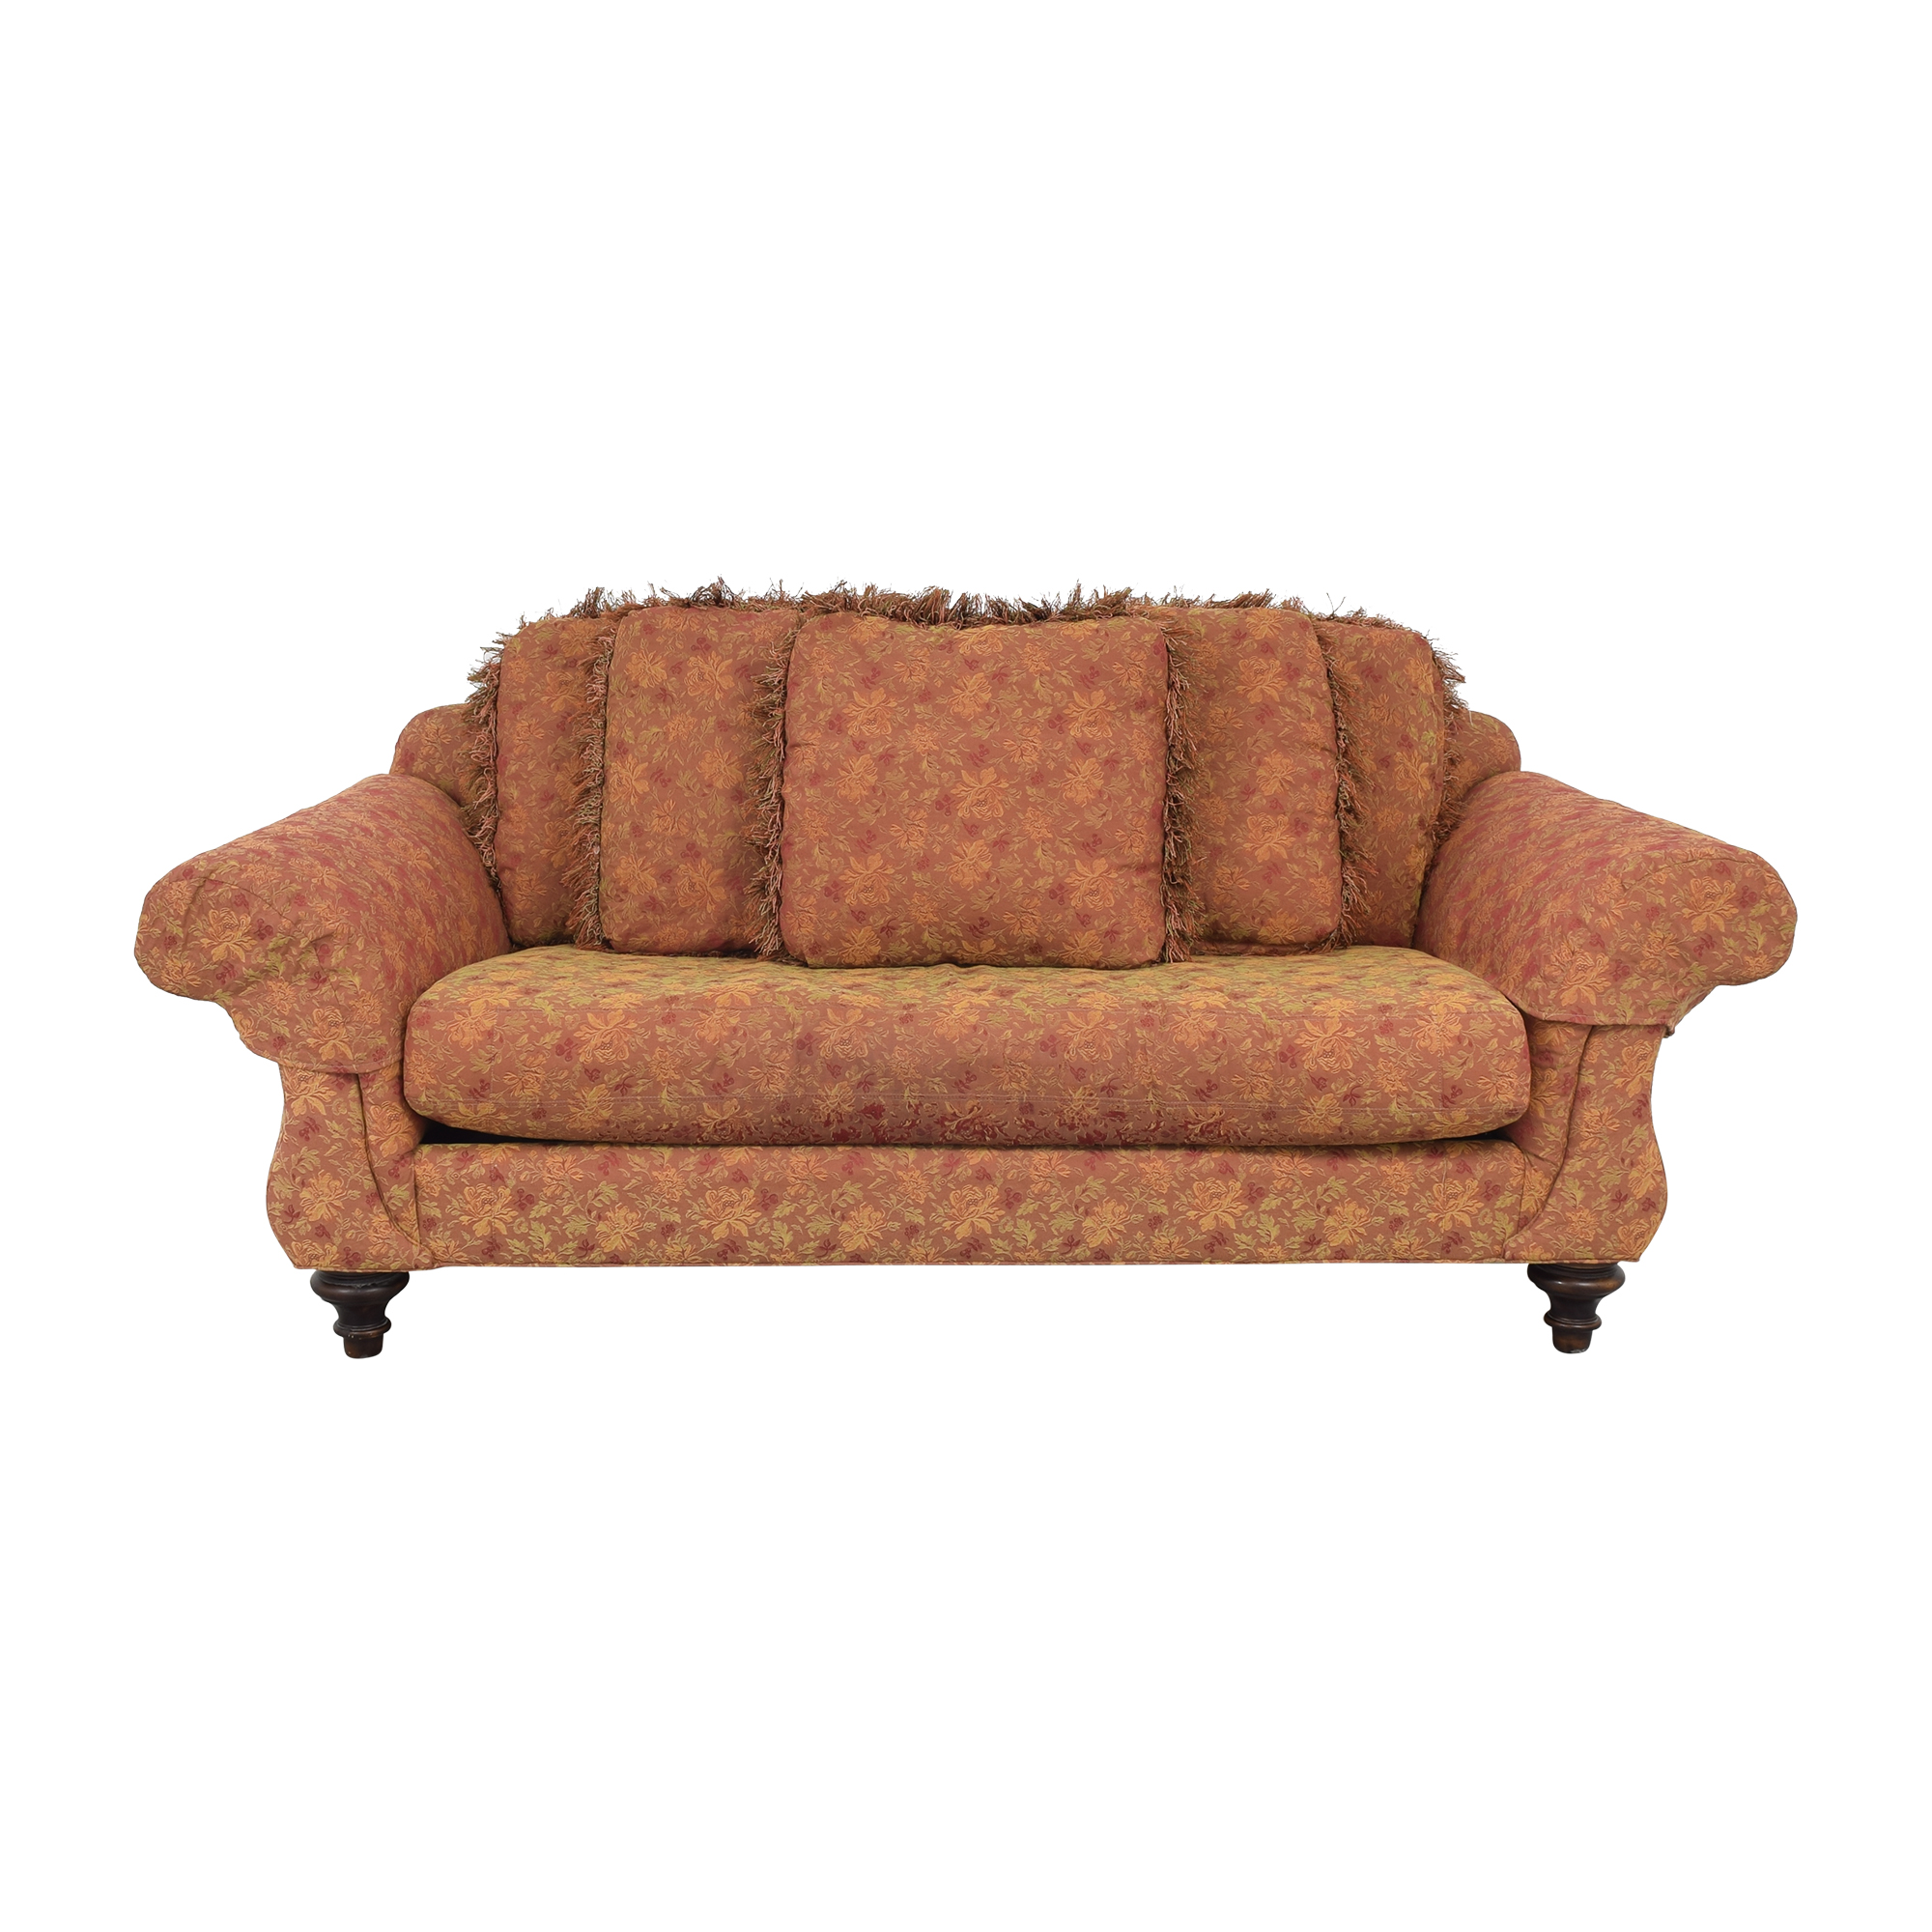 Vanguard Furniture Vanguard Single Cushion Sofa dimensions